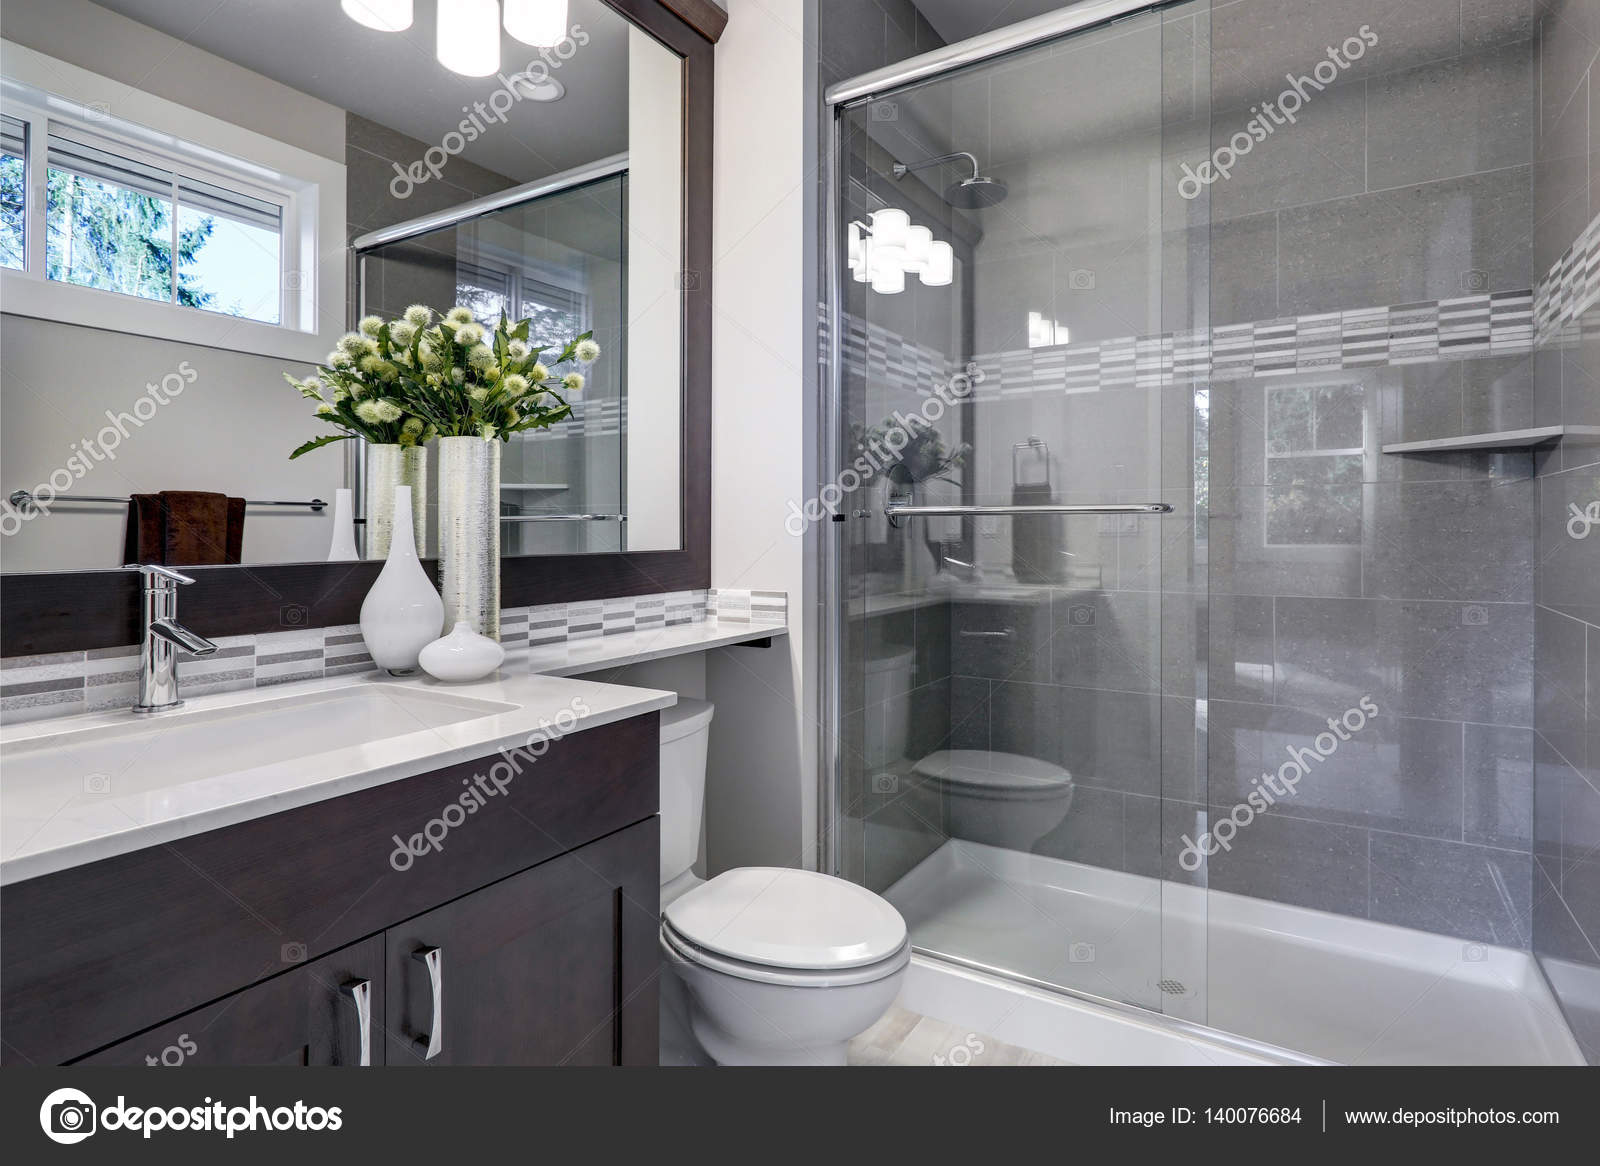 https://st3.depositphotos.com/1041088/14007/i/1600/depositphotos_140076684-stock-photo-bright-new-bathroom-interior-with.jpg